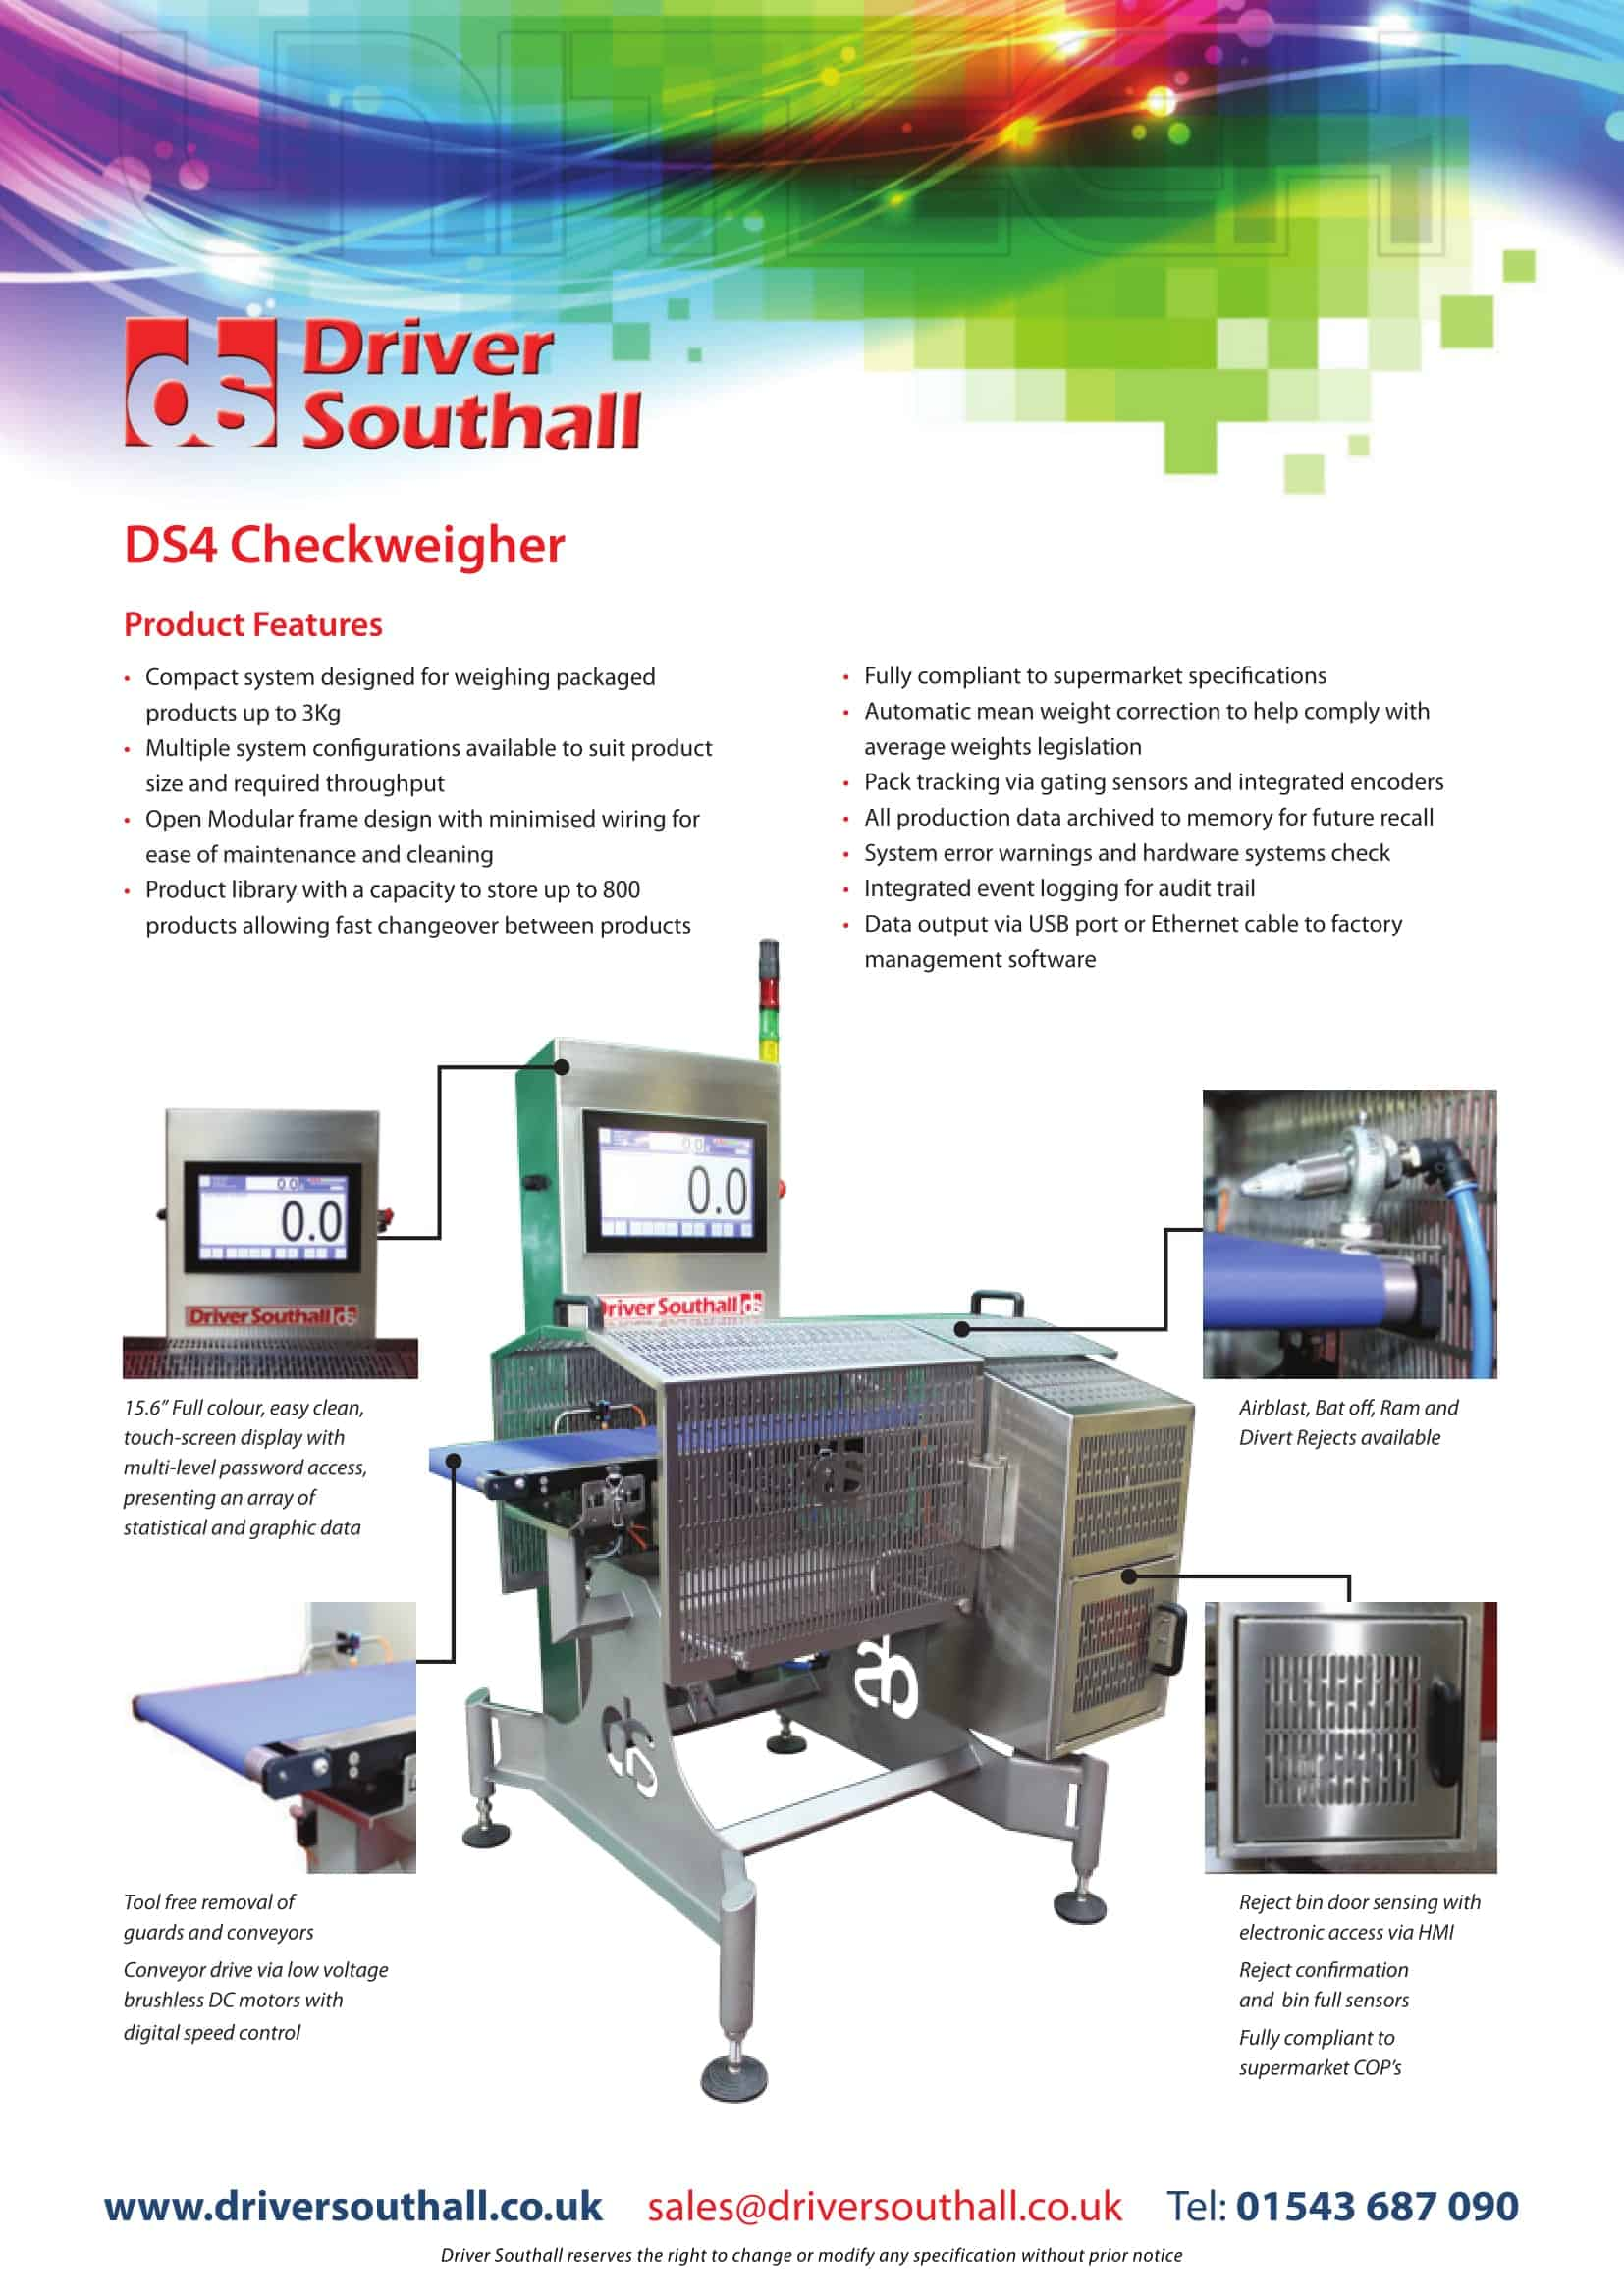 DS4 Checkweigher